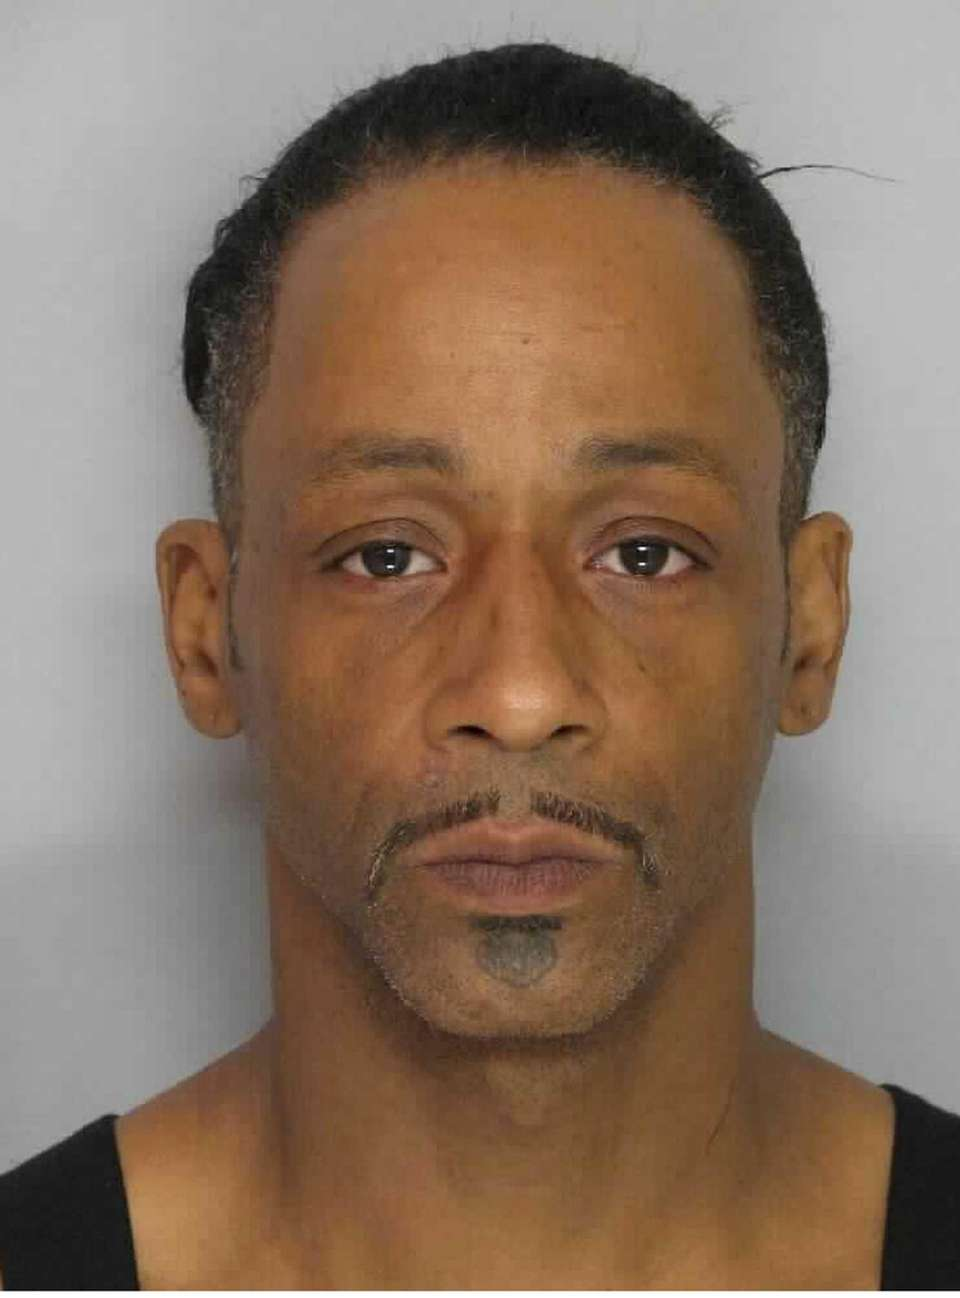 Katt Williams appears in a police booking photo